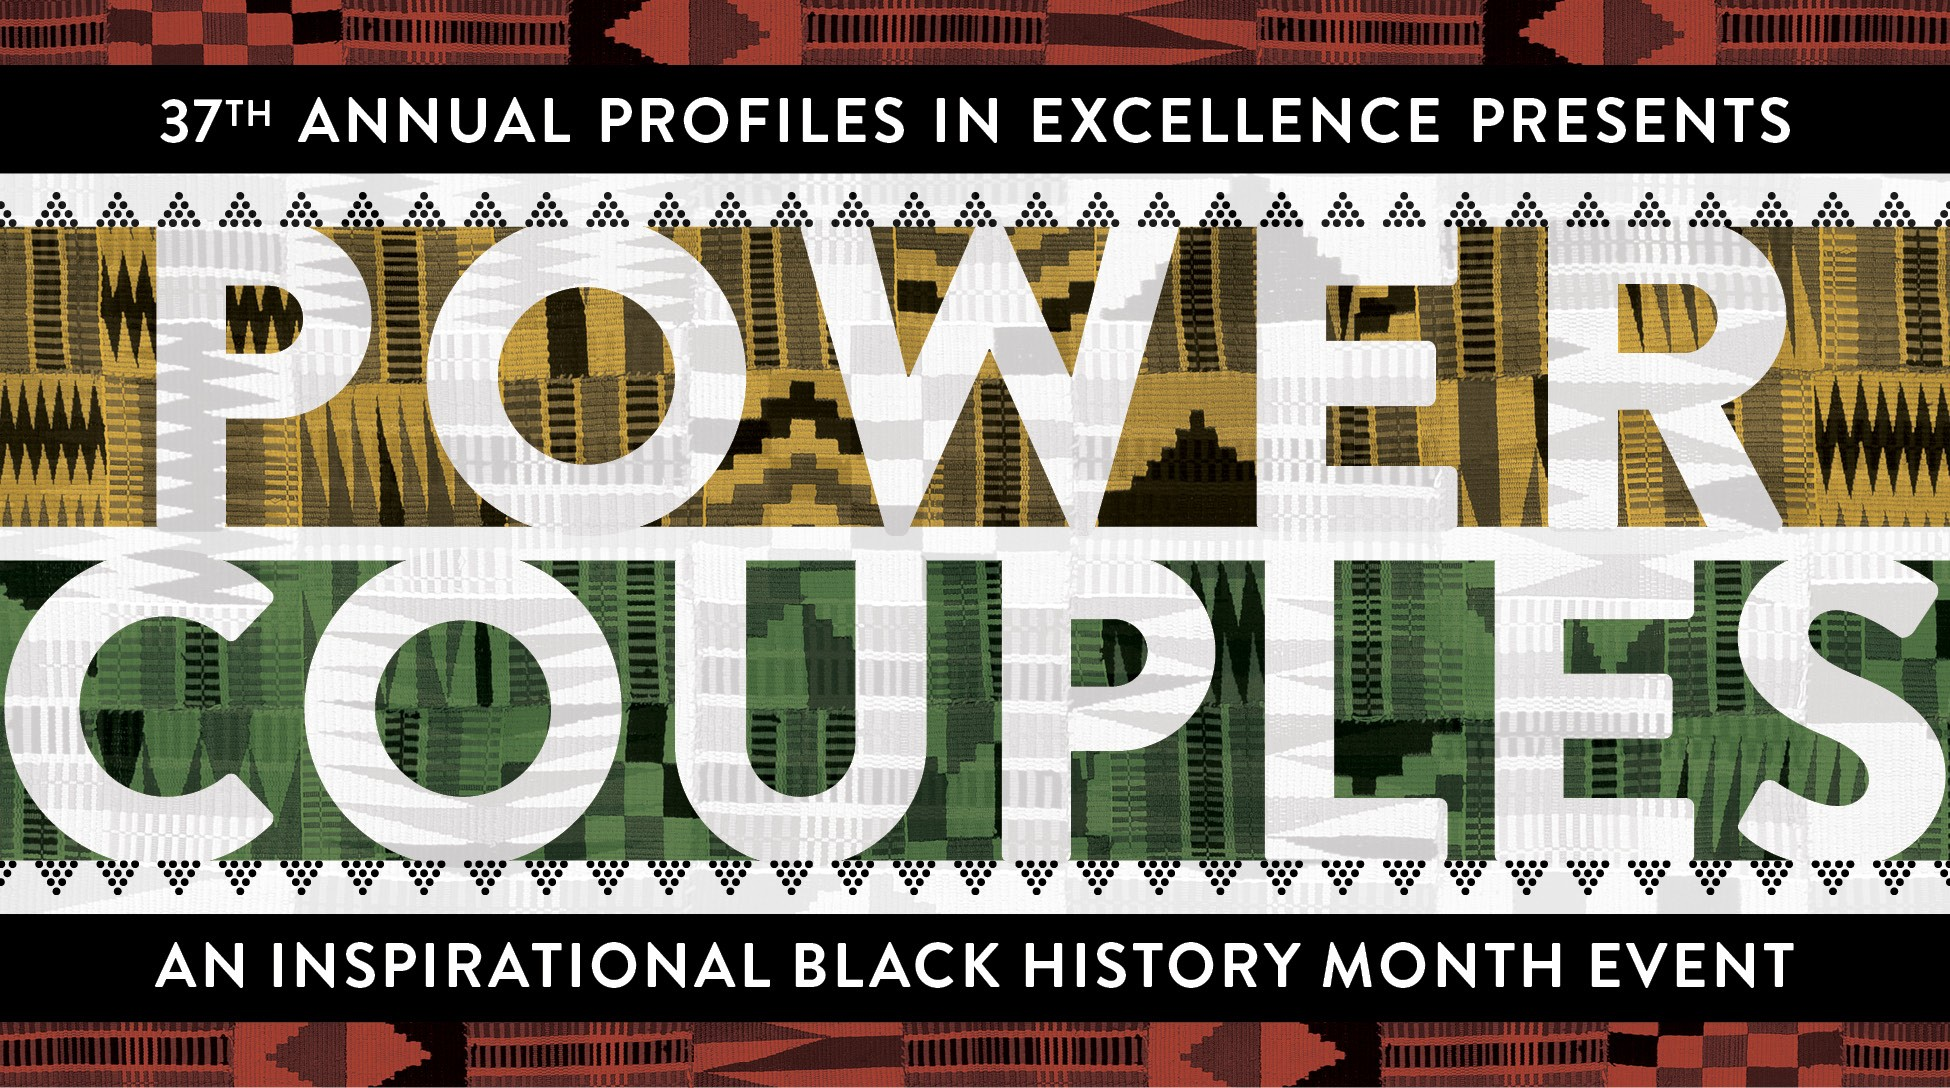 Profiles in Excellence: Power Couples at Greenbelt Cultural Center